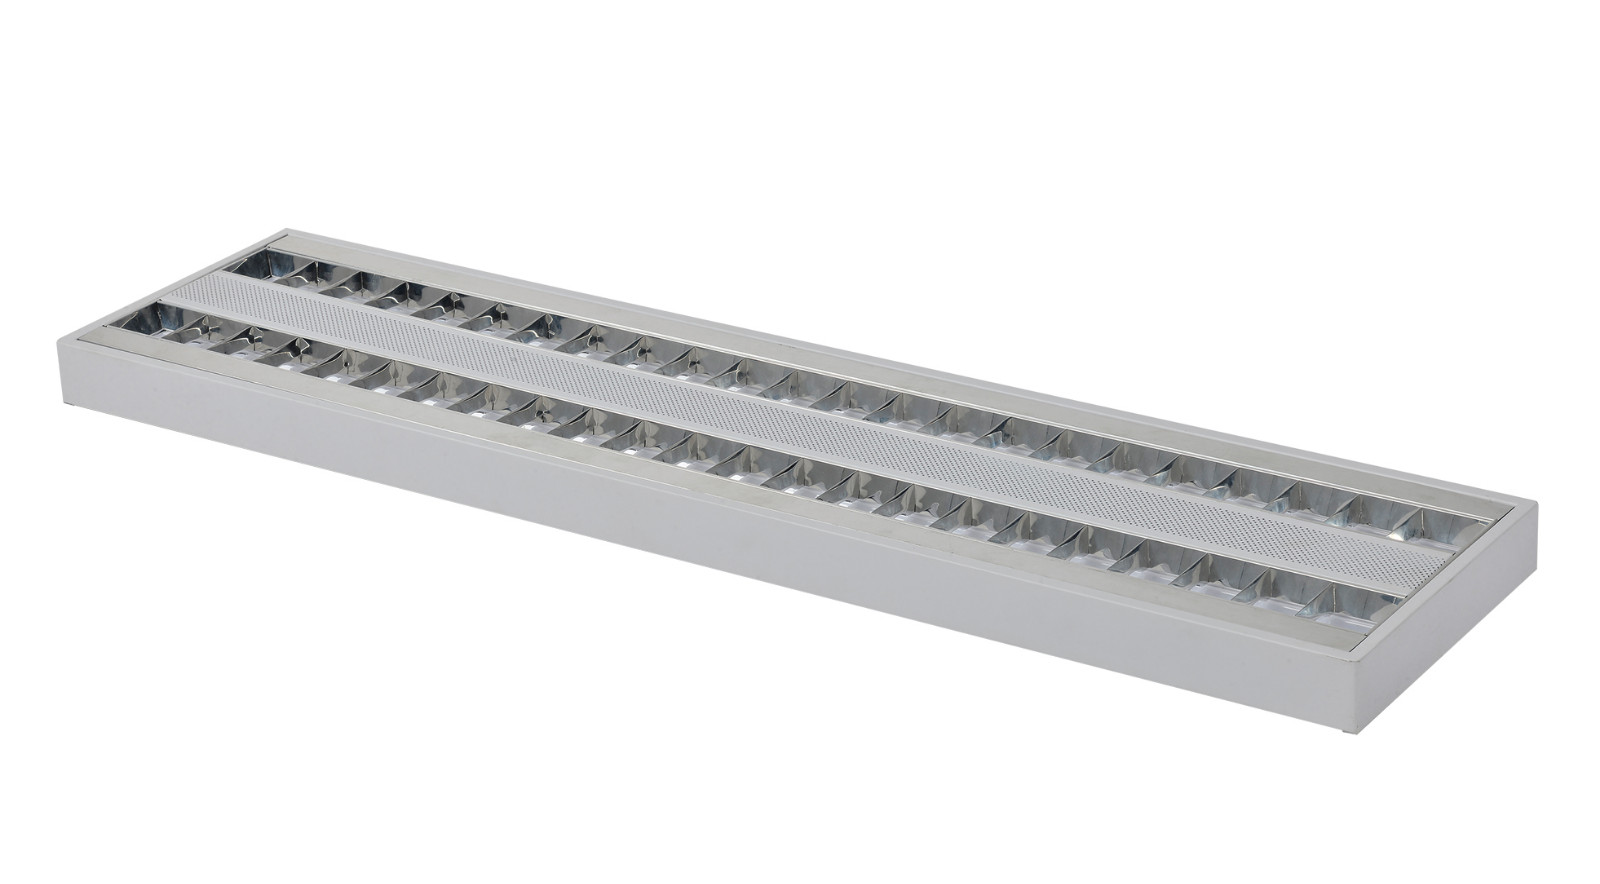 Halcon led office lighting suppliers for office-2